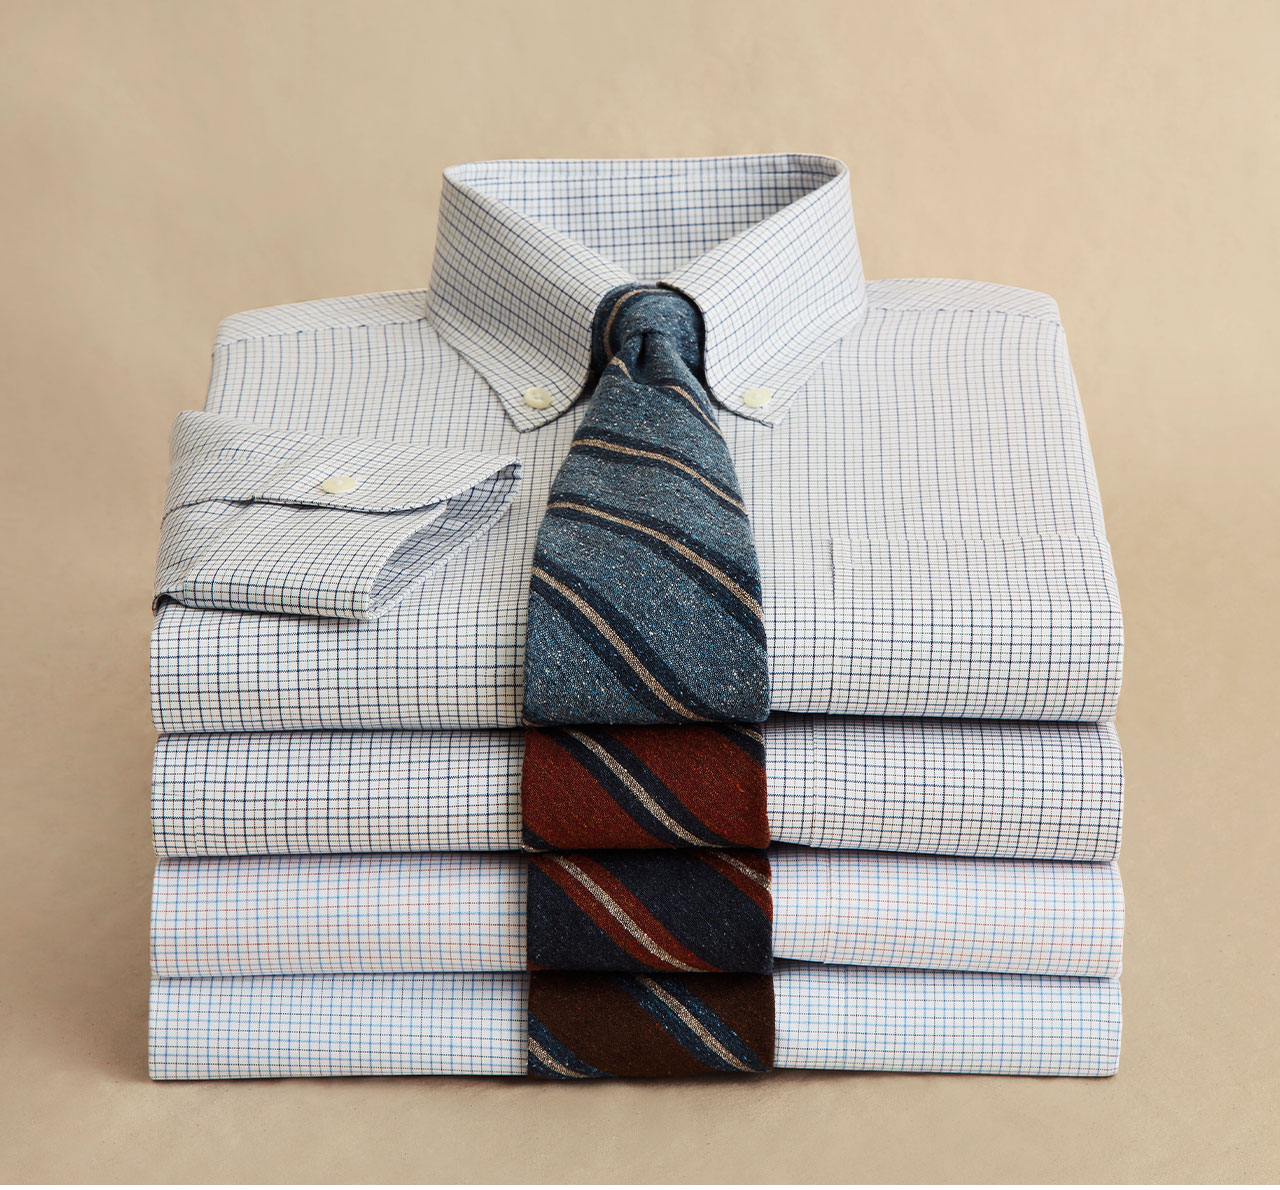 Meet Your Match - Some things are just better together - such as our dress shirts and ties. Now 25% off 3 or more shirts for a limited time.**